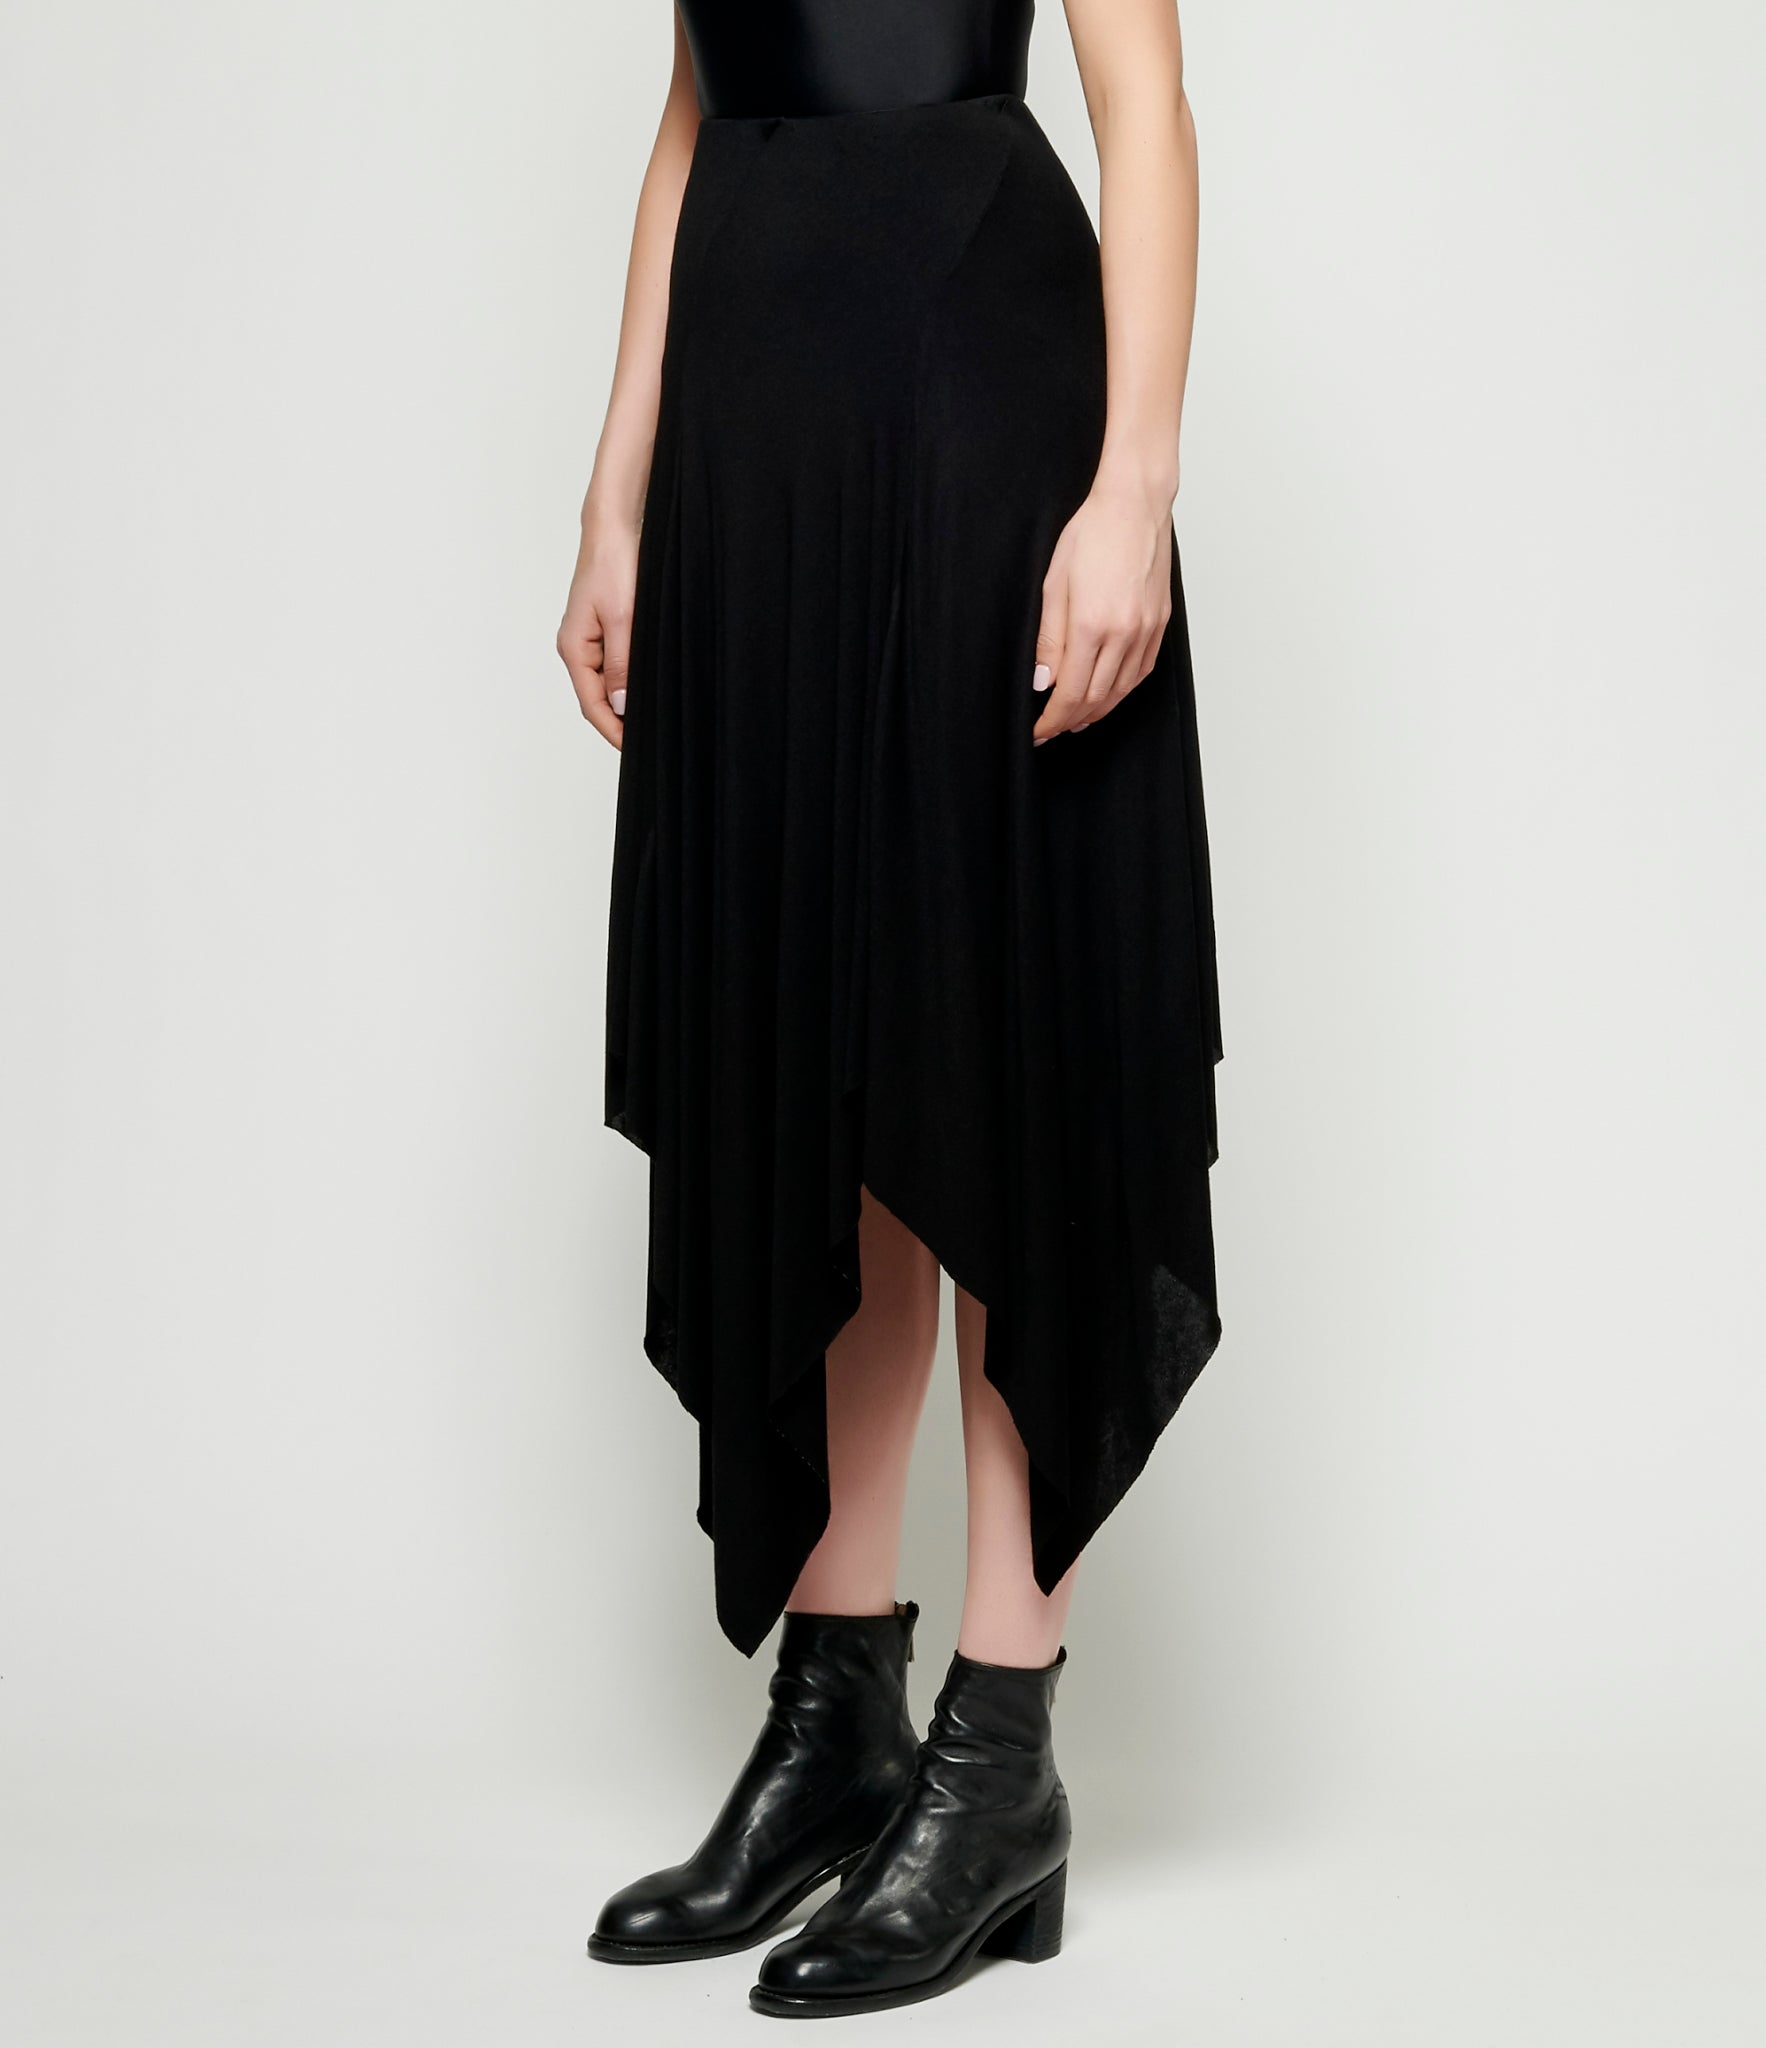 m.a+ Diagonal Zipped Square Skirt